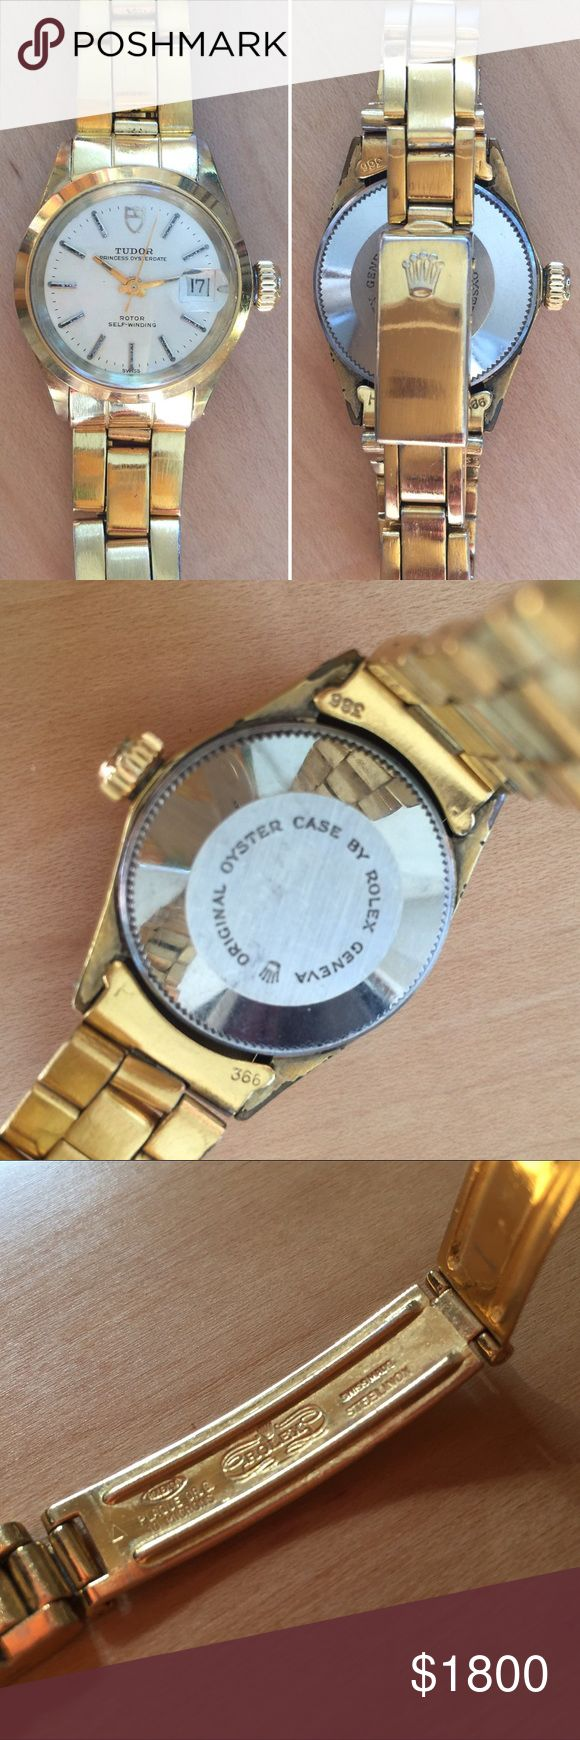 💯% Authentic Rolex/Tudor Gold Princess Watch Vintage 1970's Ladies Princess Tudor/Rolex Watch. Gold Plated Stainless Steel Swiss Rotor Self-Winding featuring a calendar at the 3 o'clock mark lens over date display. Rolex crown on turn dial and clasp. No Papers. Vintage wear on band not too noticeable unless up-close(see photos for details) Just had it serviced so it works great. A rare watch for the Rolex collector. Rolex/Tudor Accessories Watches